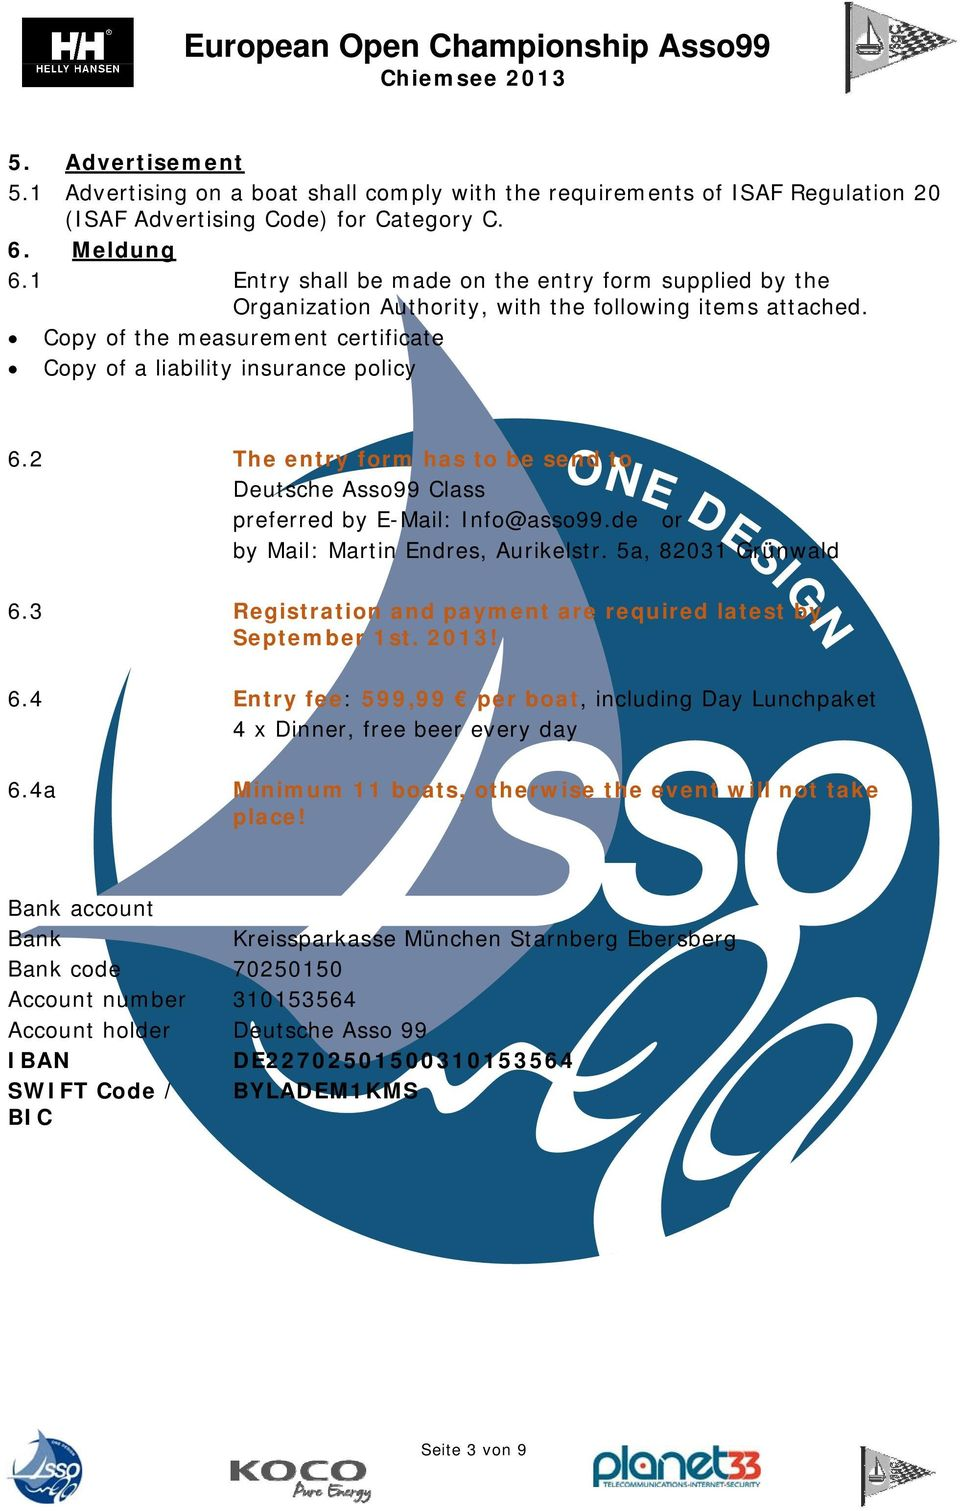 2 The entry form has to be send to Deutsche Asso99 Class preferred by E-Mail: Info@asso99.de or by Mail: Martin Endres, Aurikelstr. 5a, 82031 Grünwald 6.